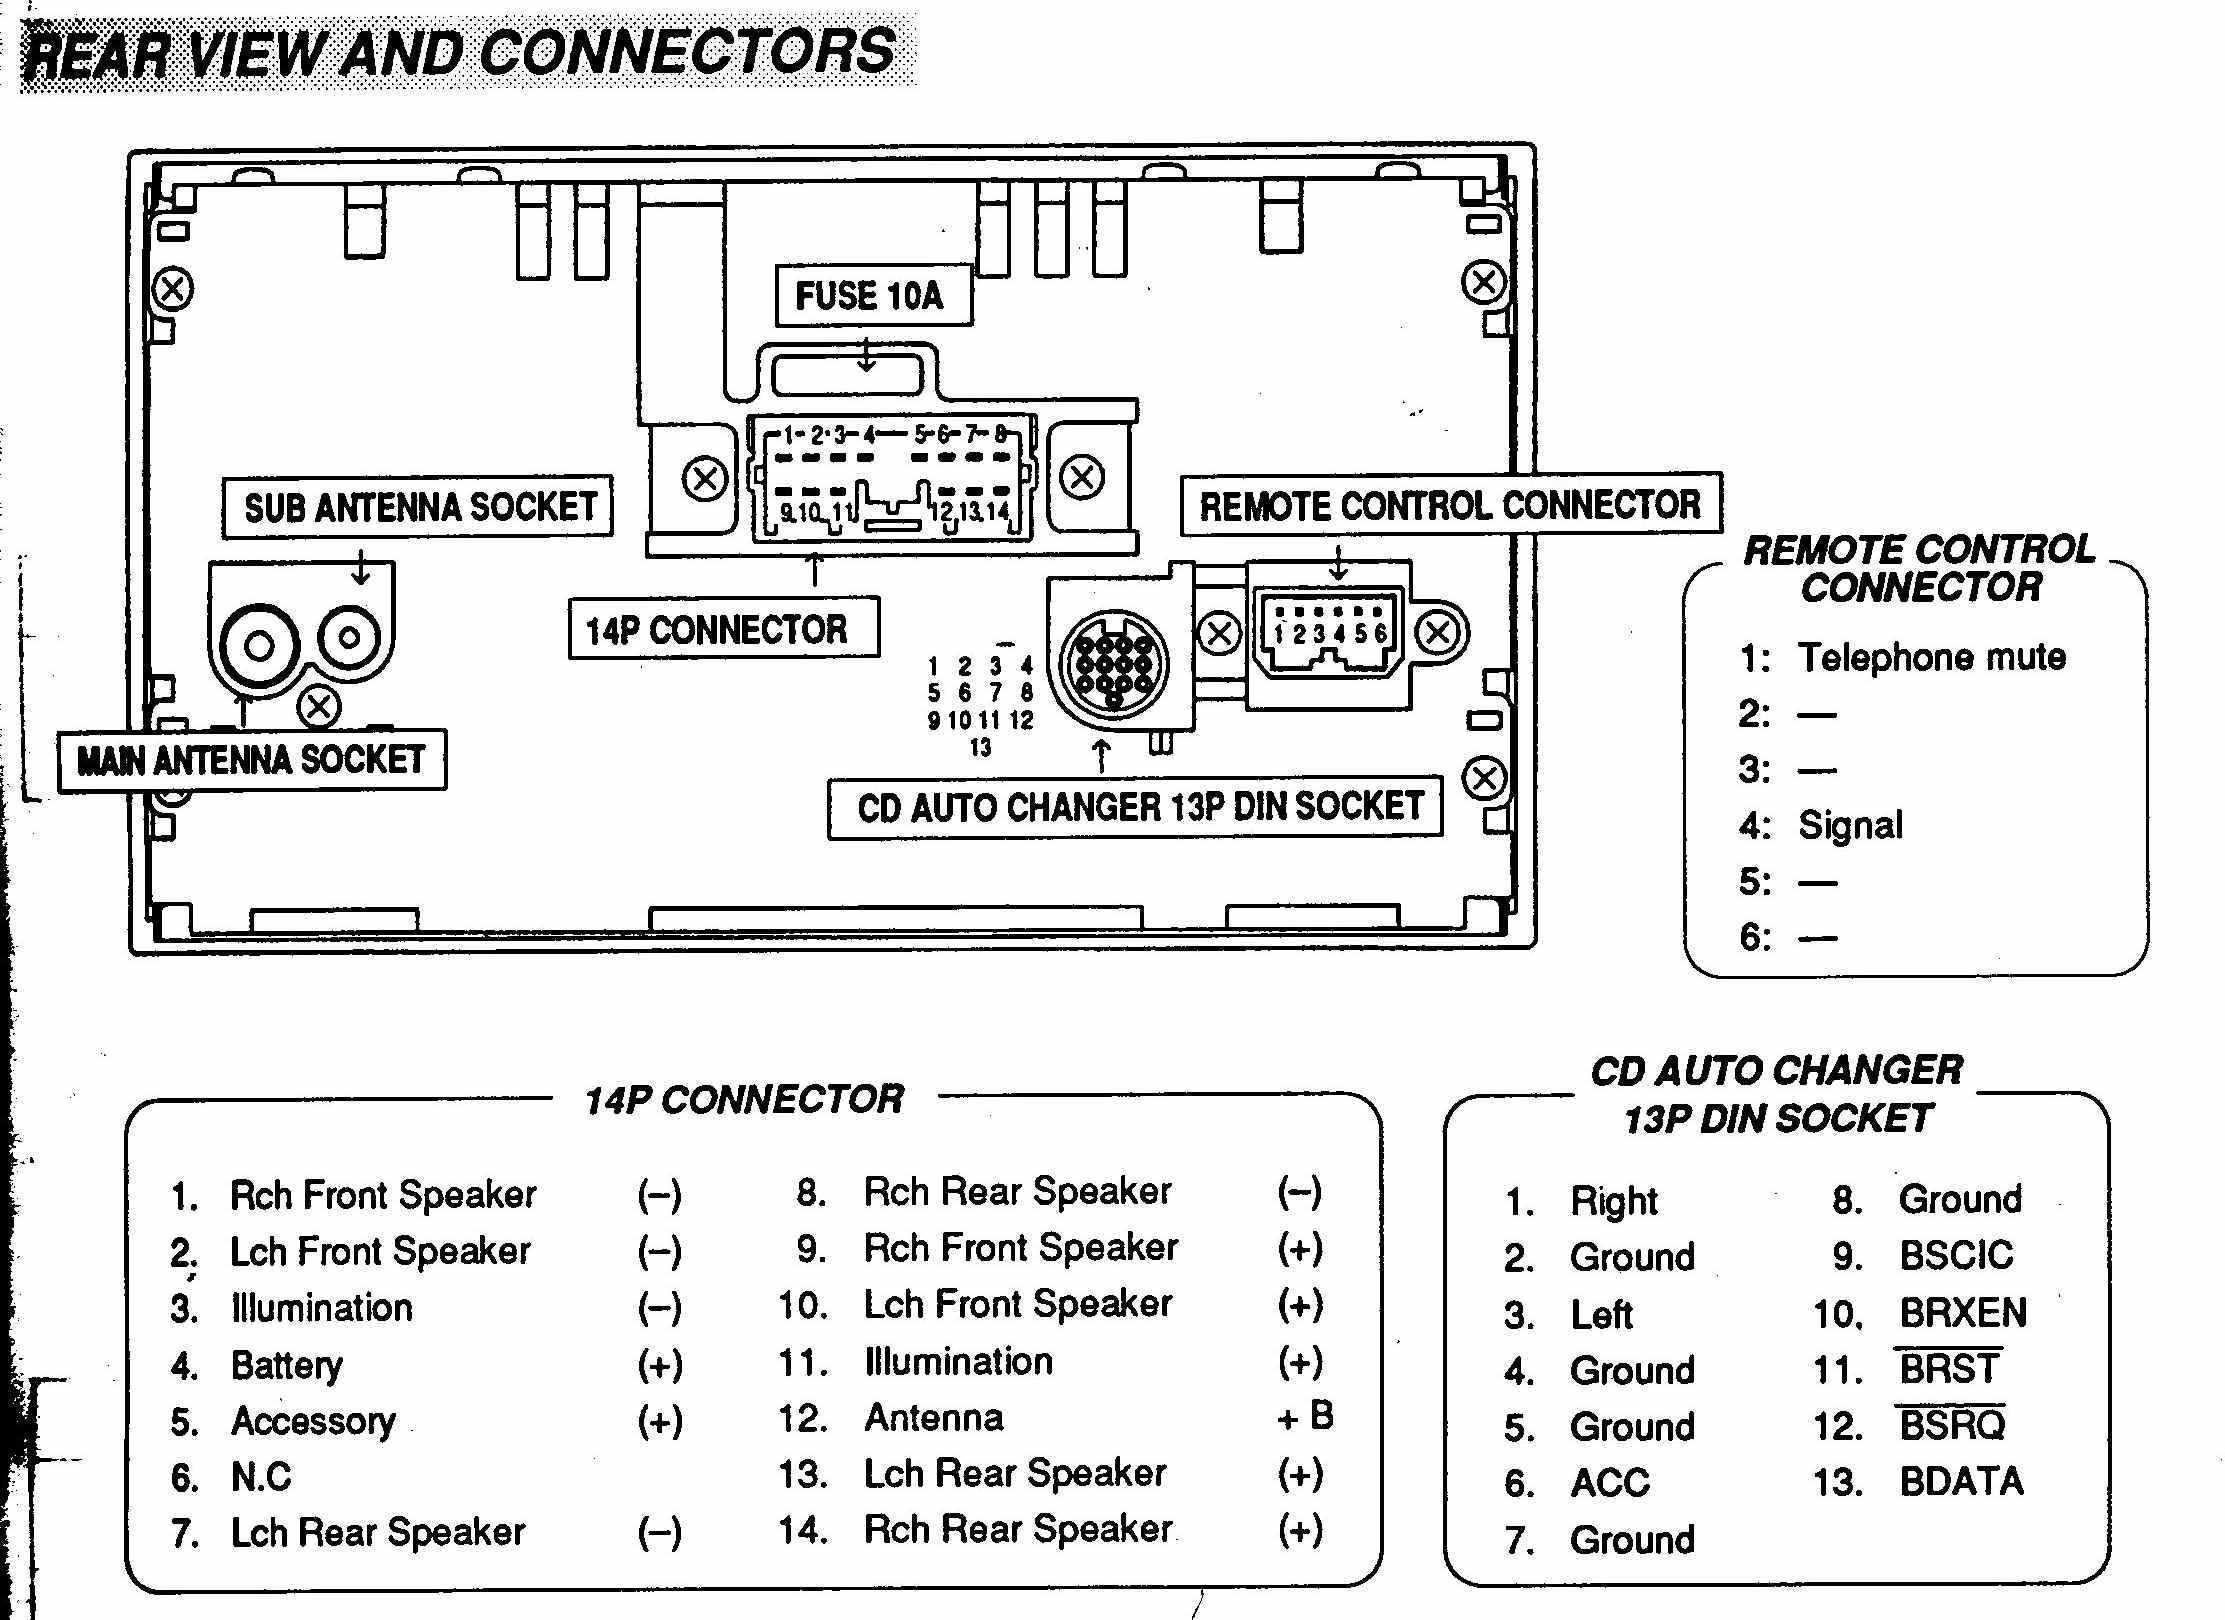 2000 Mitsubishi Eclipse Engine Diagram Wiring Diagram Moreover 2001 Mitsubishi Eclipse Radio Wiring Diagram Of 2000 Mitsubishi Eclipse Engine Diagram Vw Golf 2002 Electrical Wiring Diagram Wiring Diagram